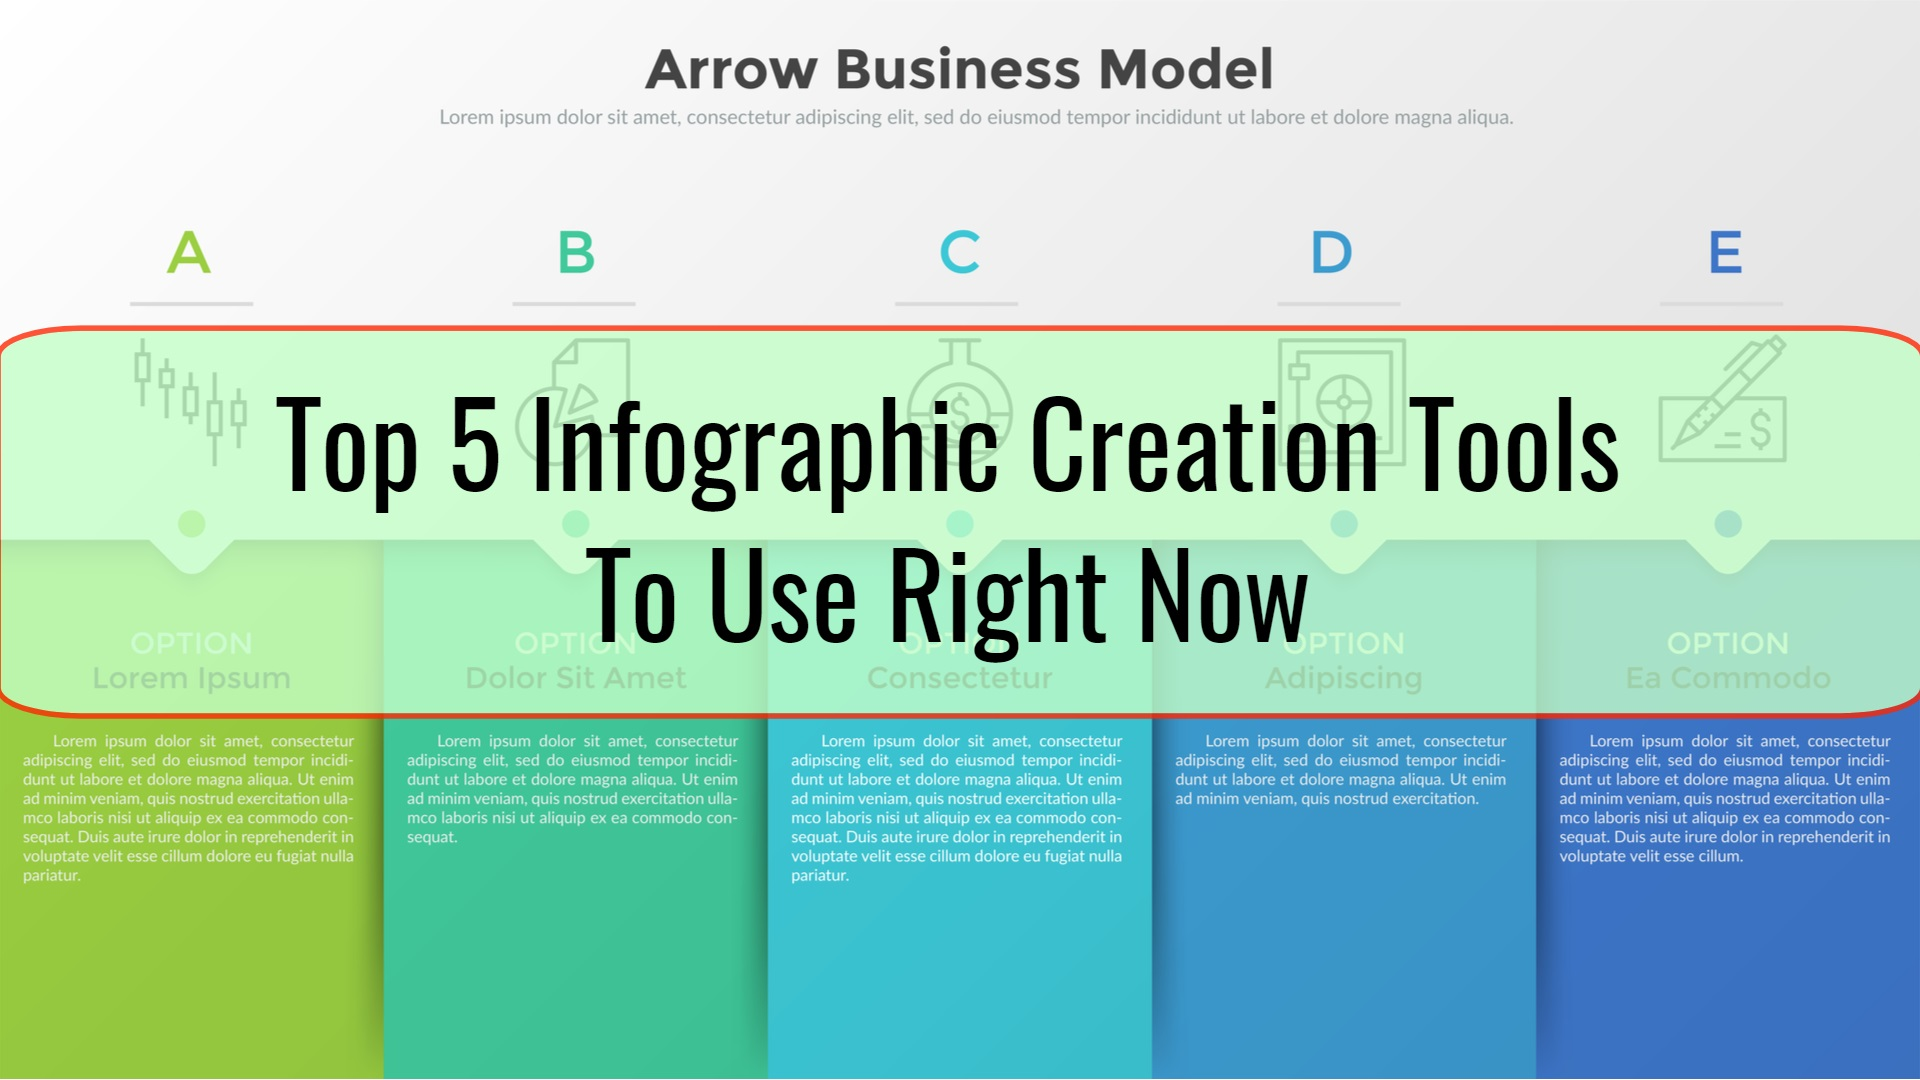 Top 5 Infographic Creation Tools To Use Right Now